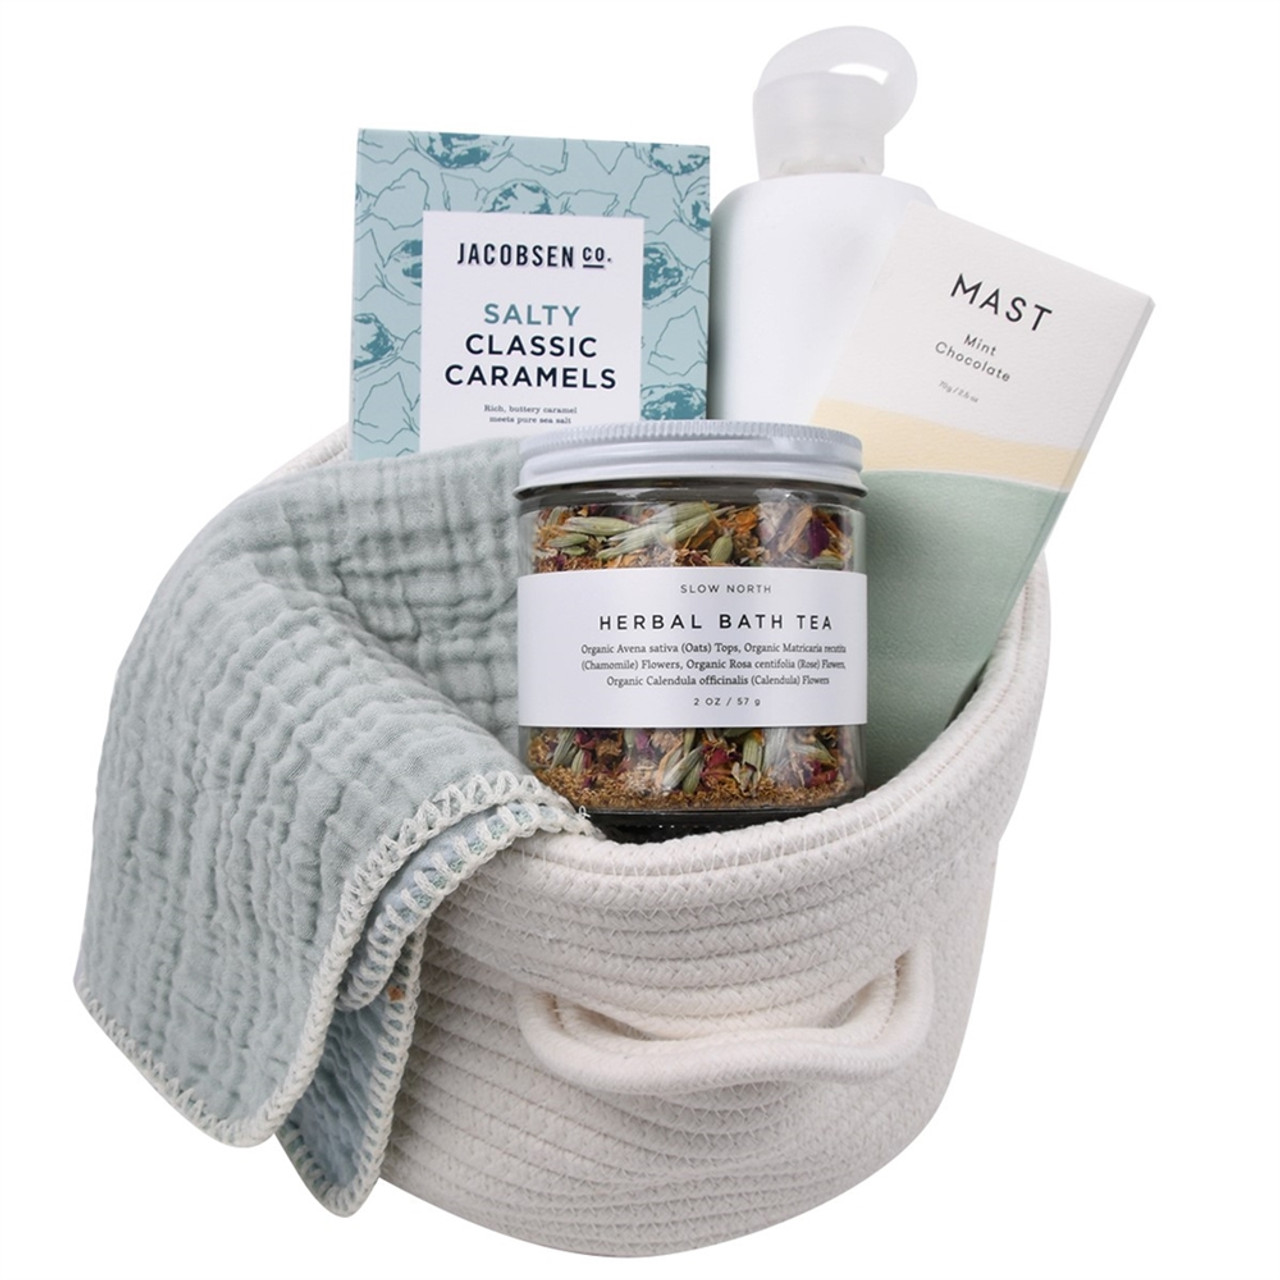 Natural Spa Gift Basket - Birthday, Thinking of You - Ocean Breeze